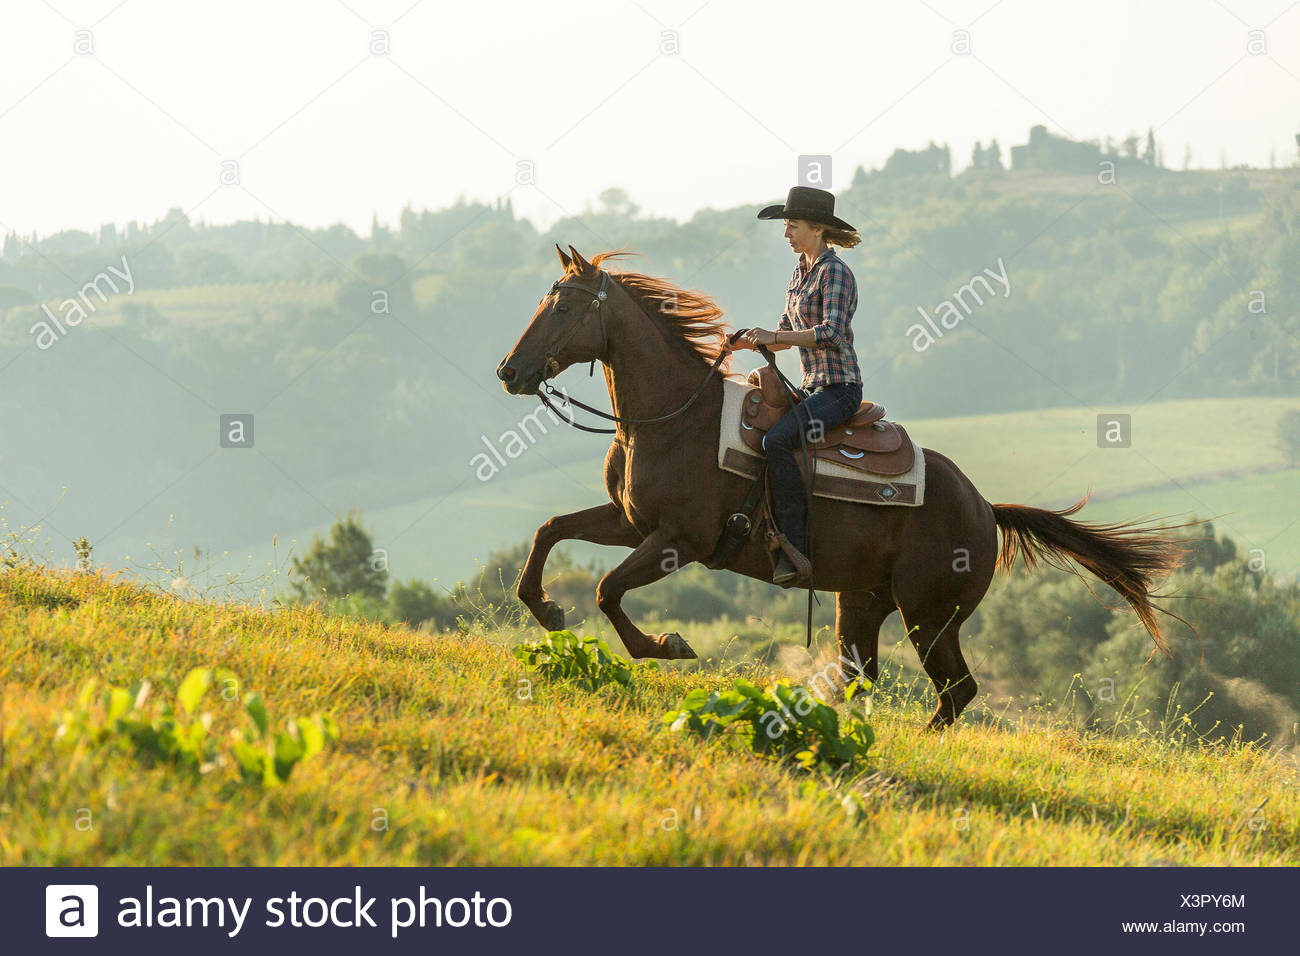 American Quarter Horse Rider galloping chestnut gelding Tuscany, Italy - Stock Image